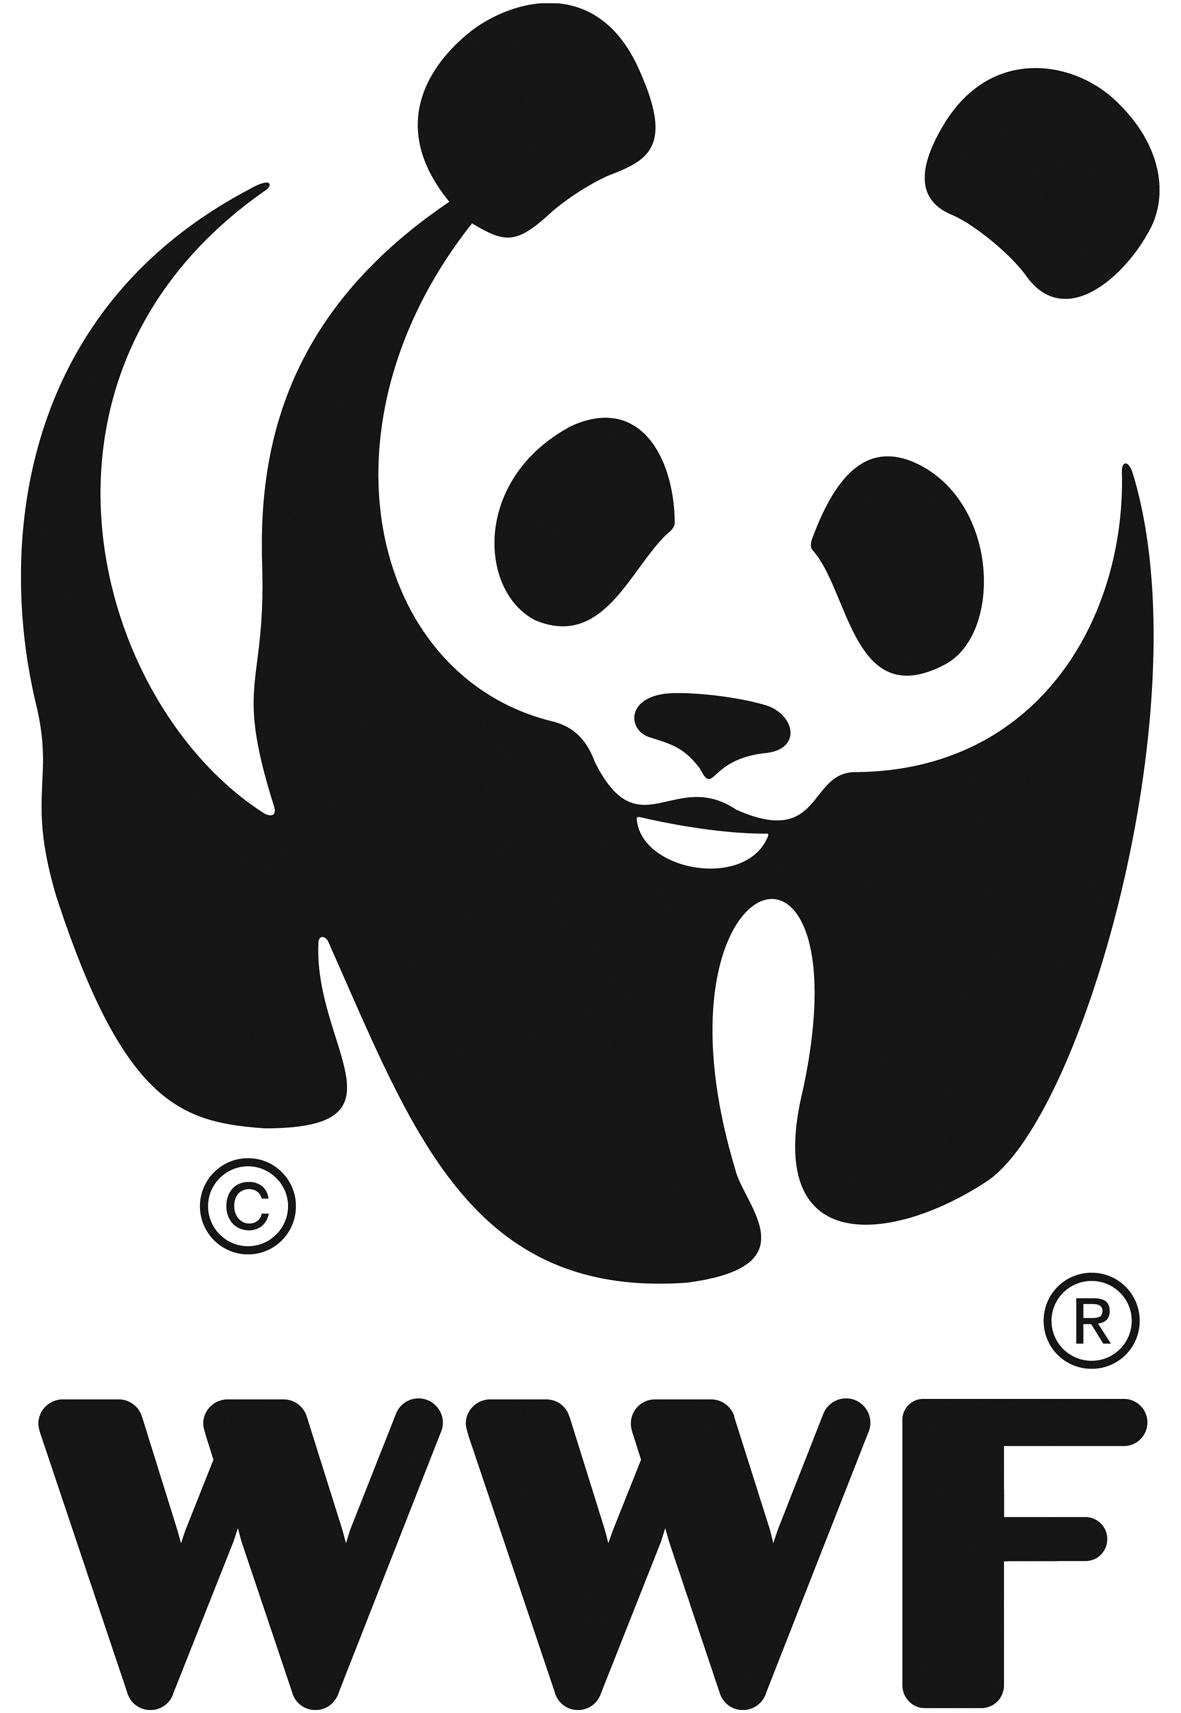 WWF-Myanmar (World Wide Fund for Nature)